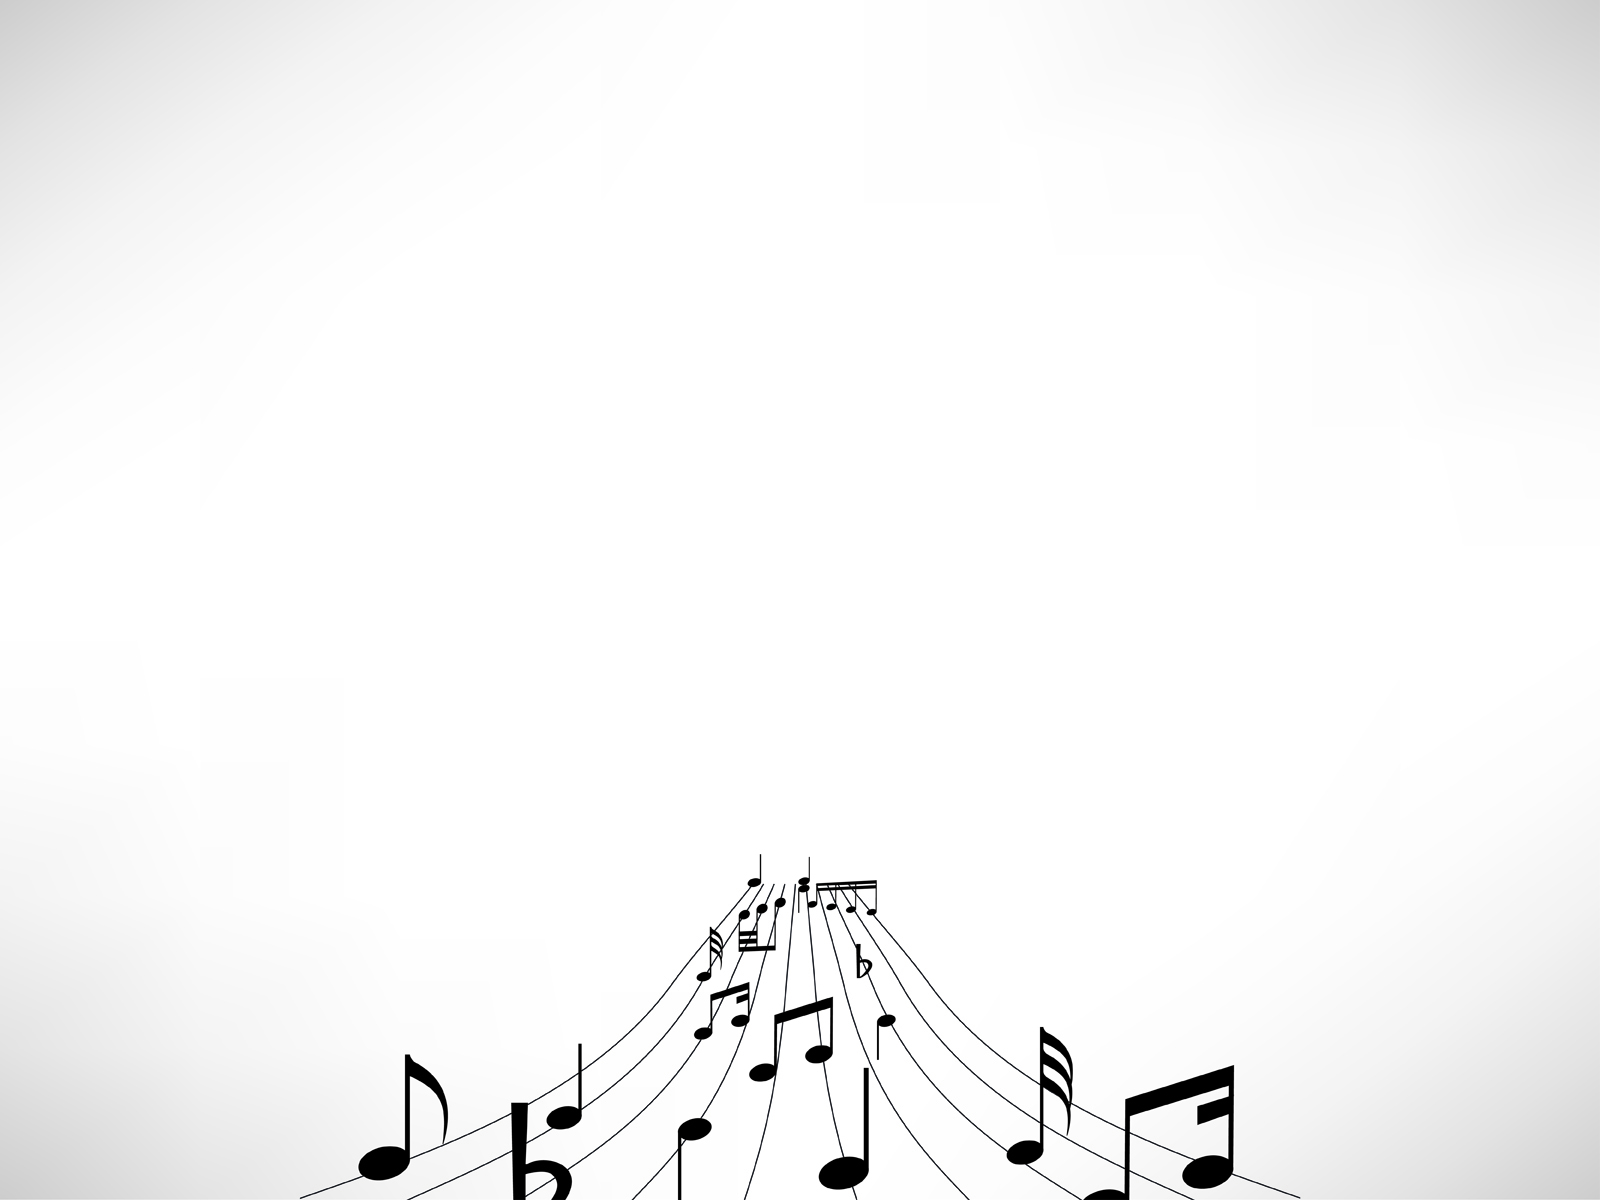 Music Notes Background 2 Cool Wallpapers | Wallpaper Joo ...